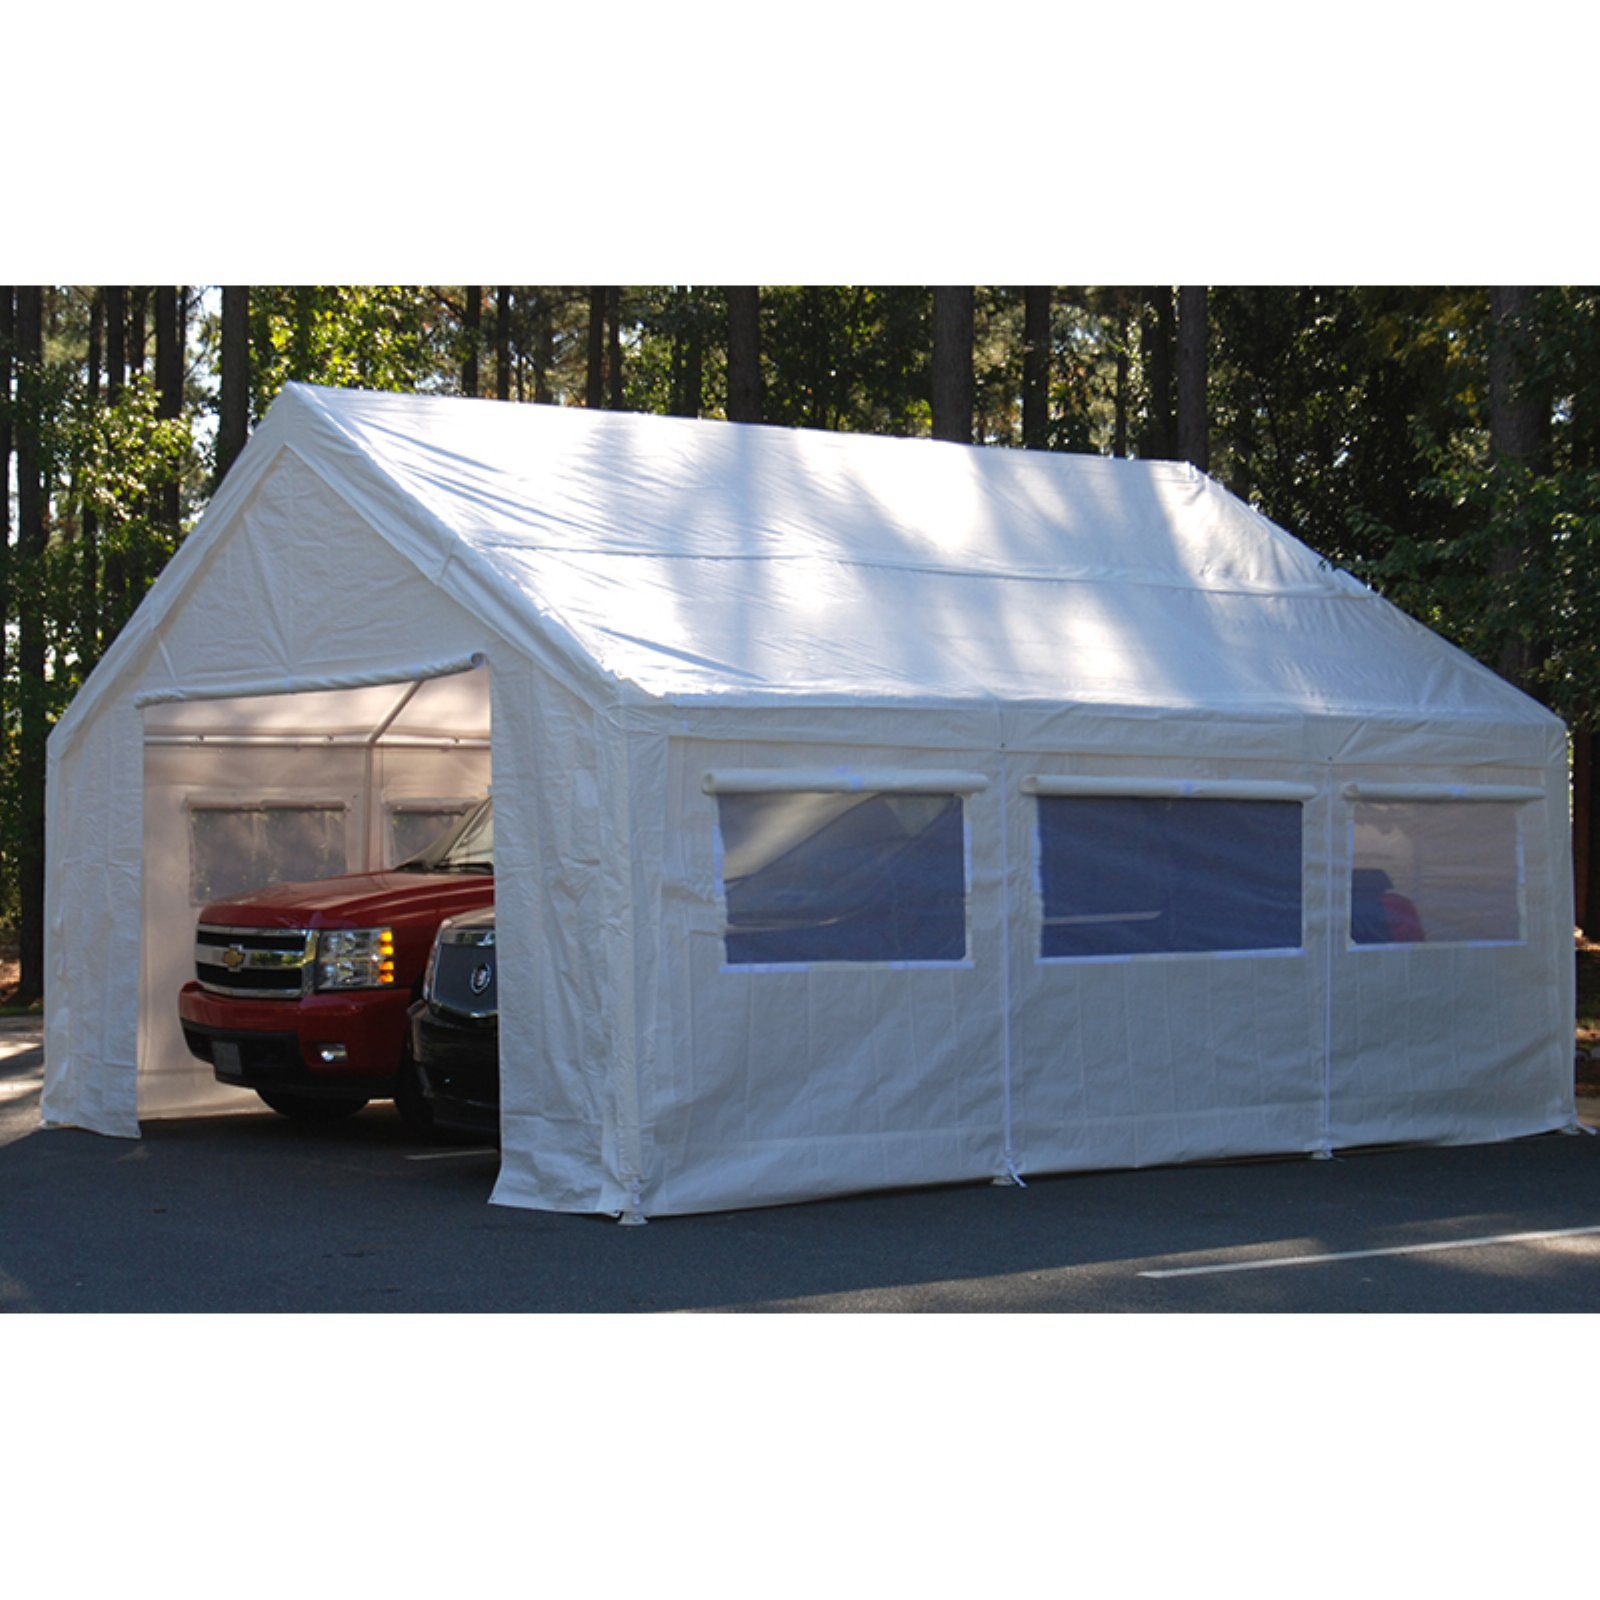 King Canopy Canopy Sidewall Kit with Flaps and Bug Screen